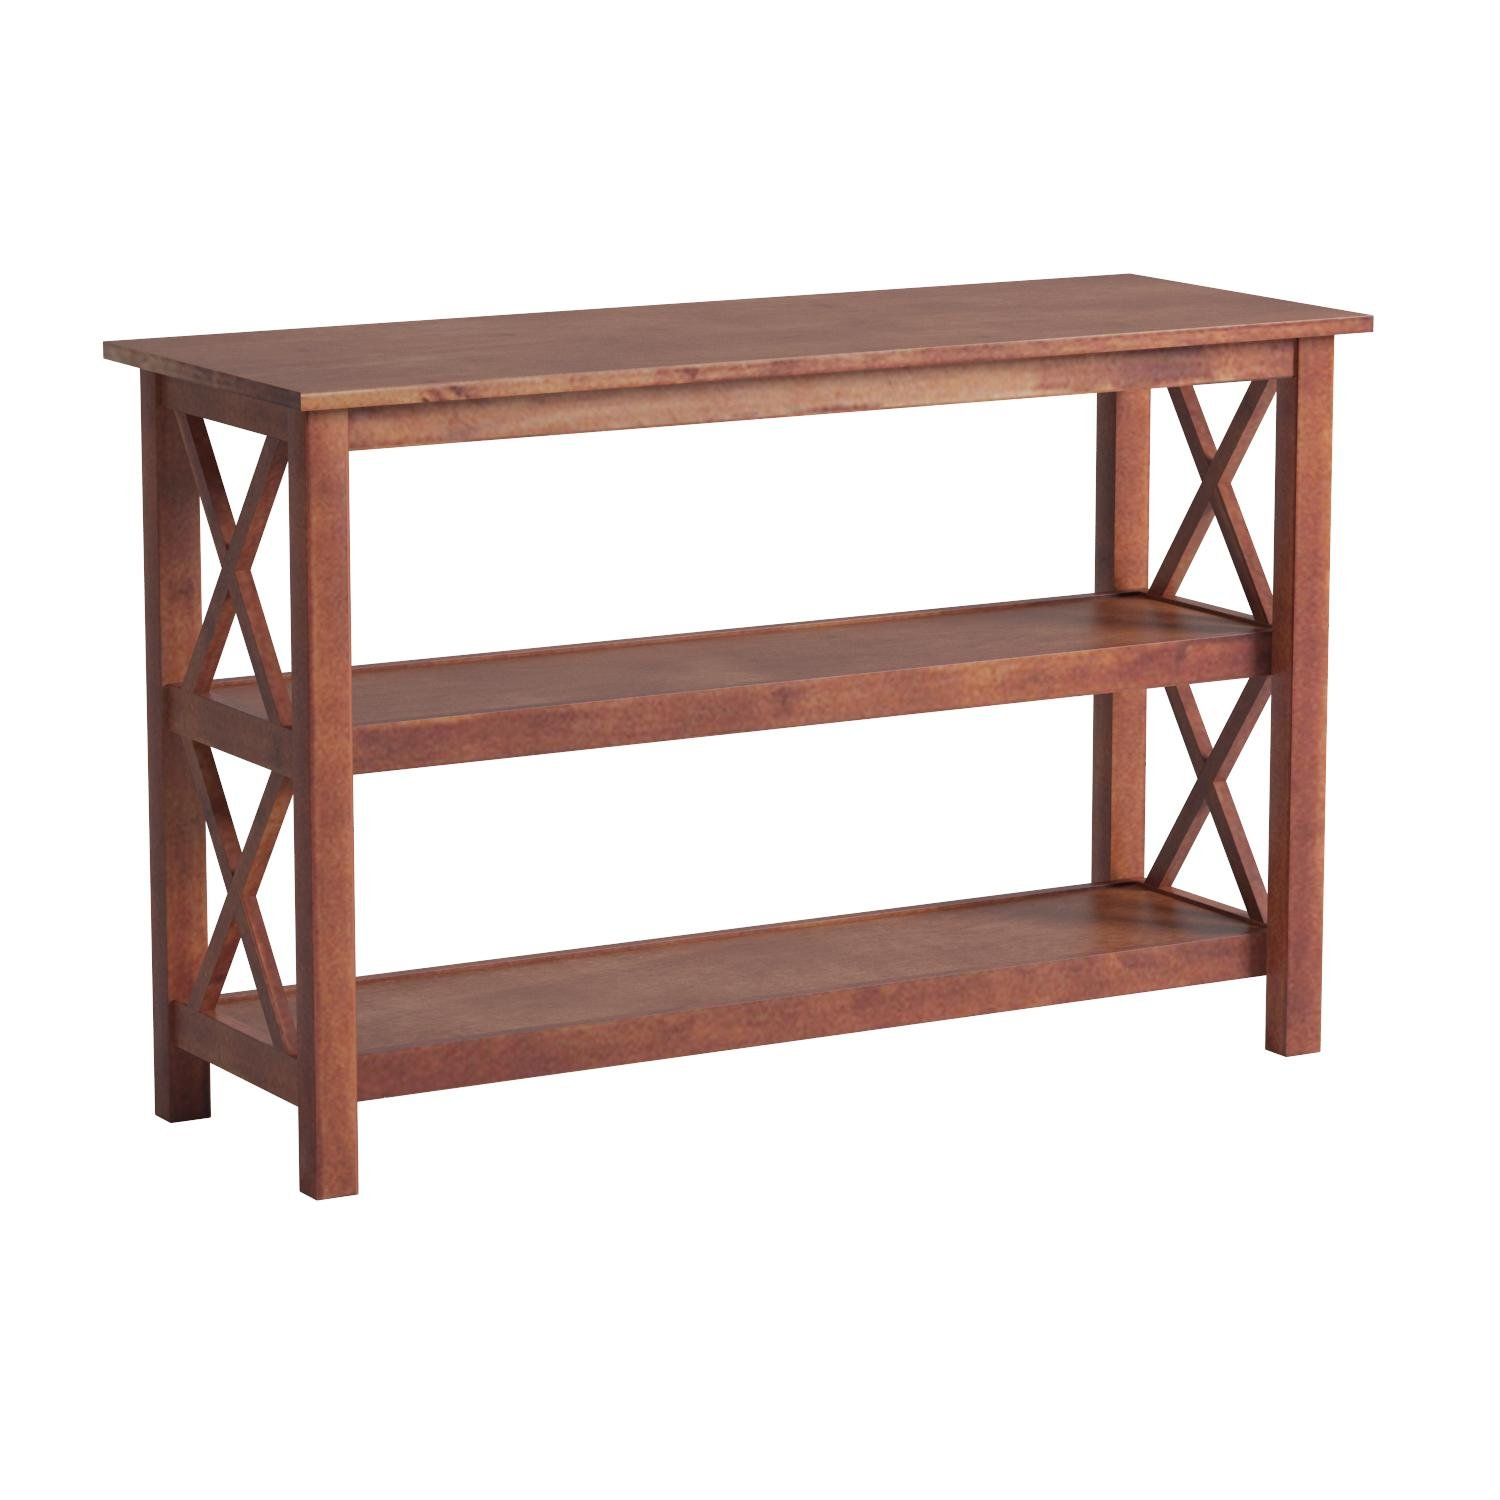 Coaster Occasional Sofa Table, Brown by Coaster Home Furnishings